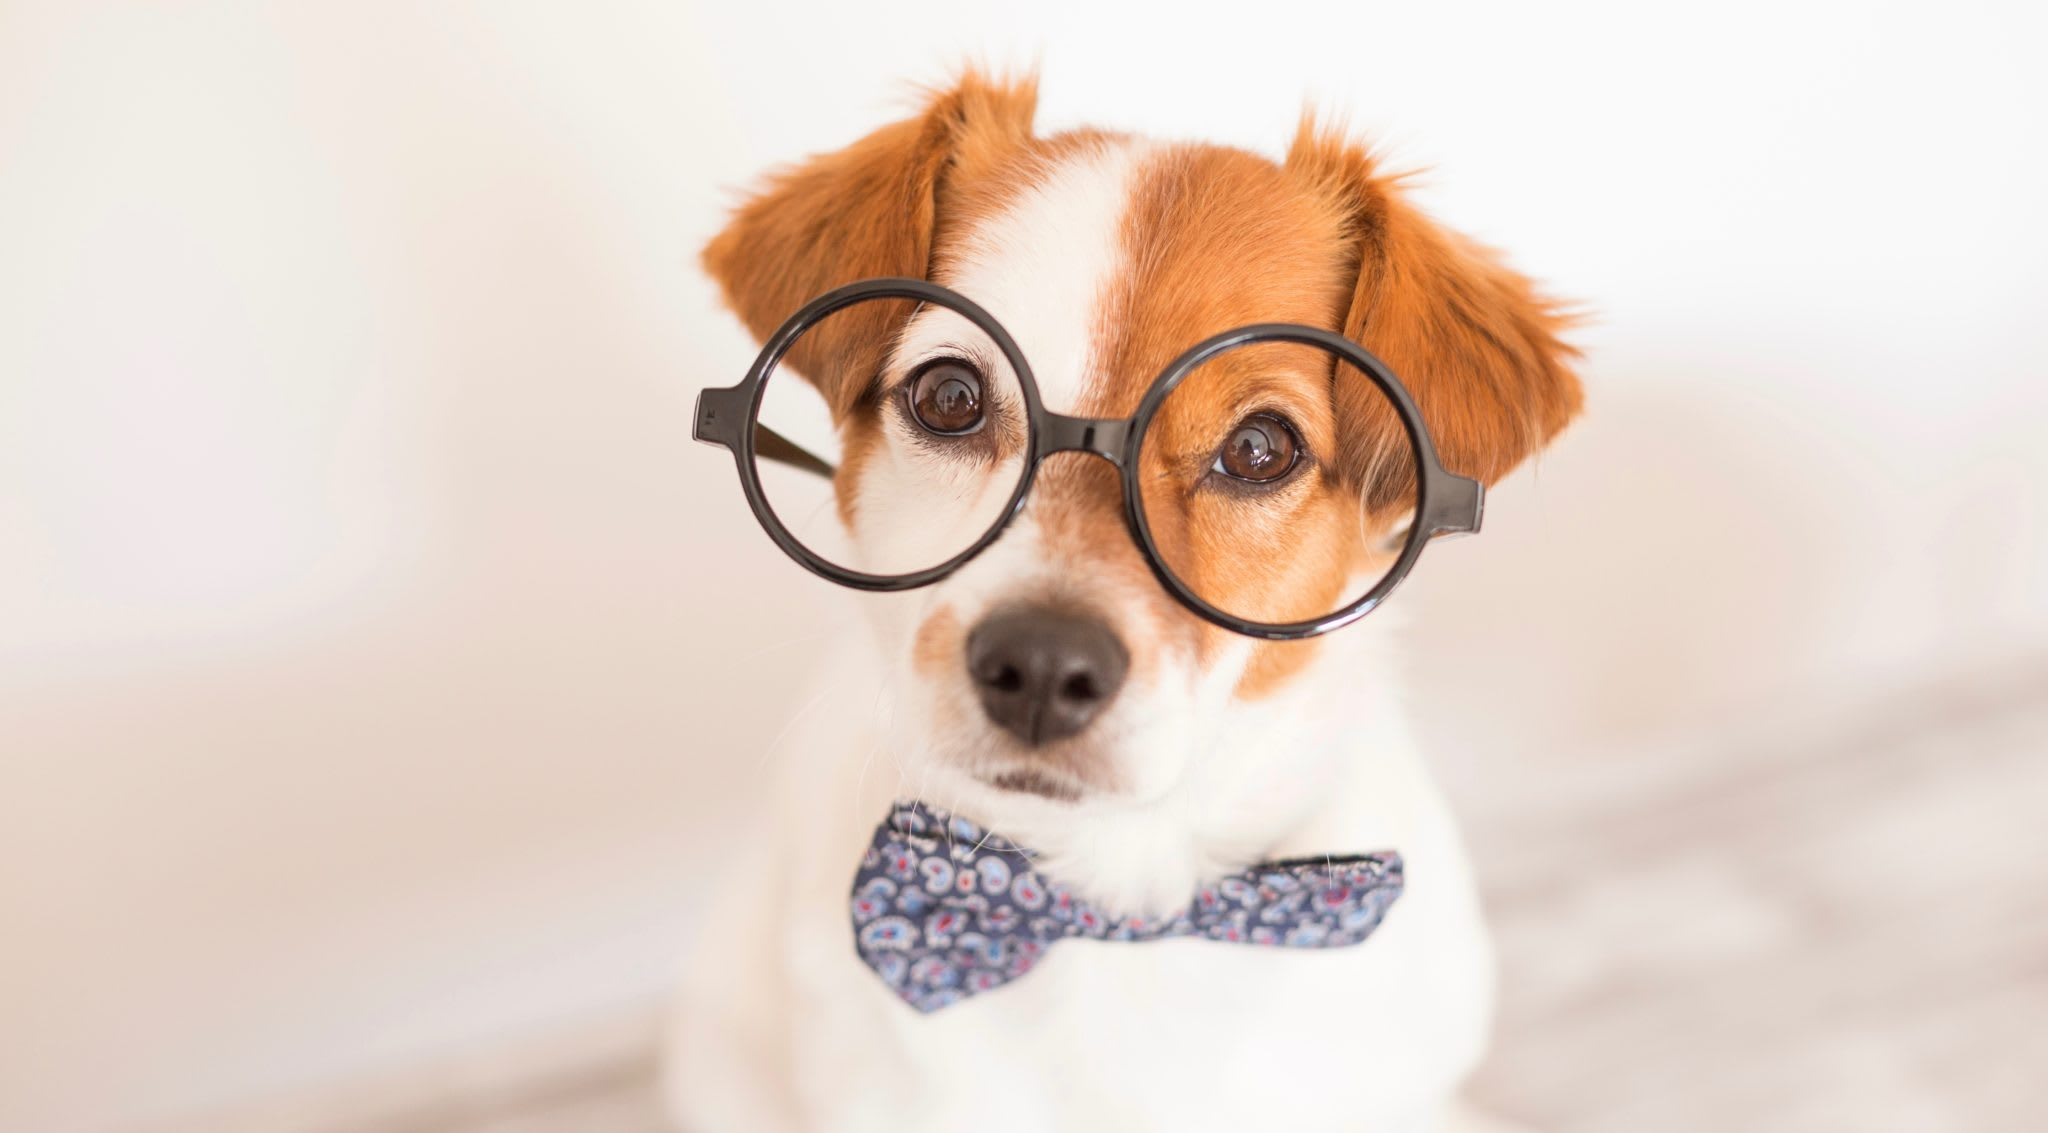 embark dog with glasses bowtie